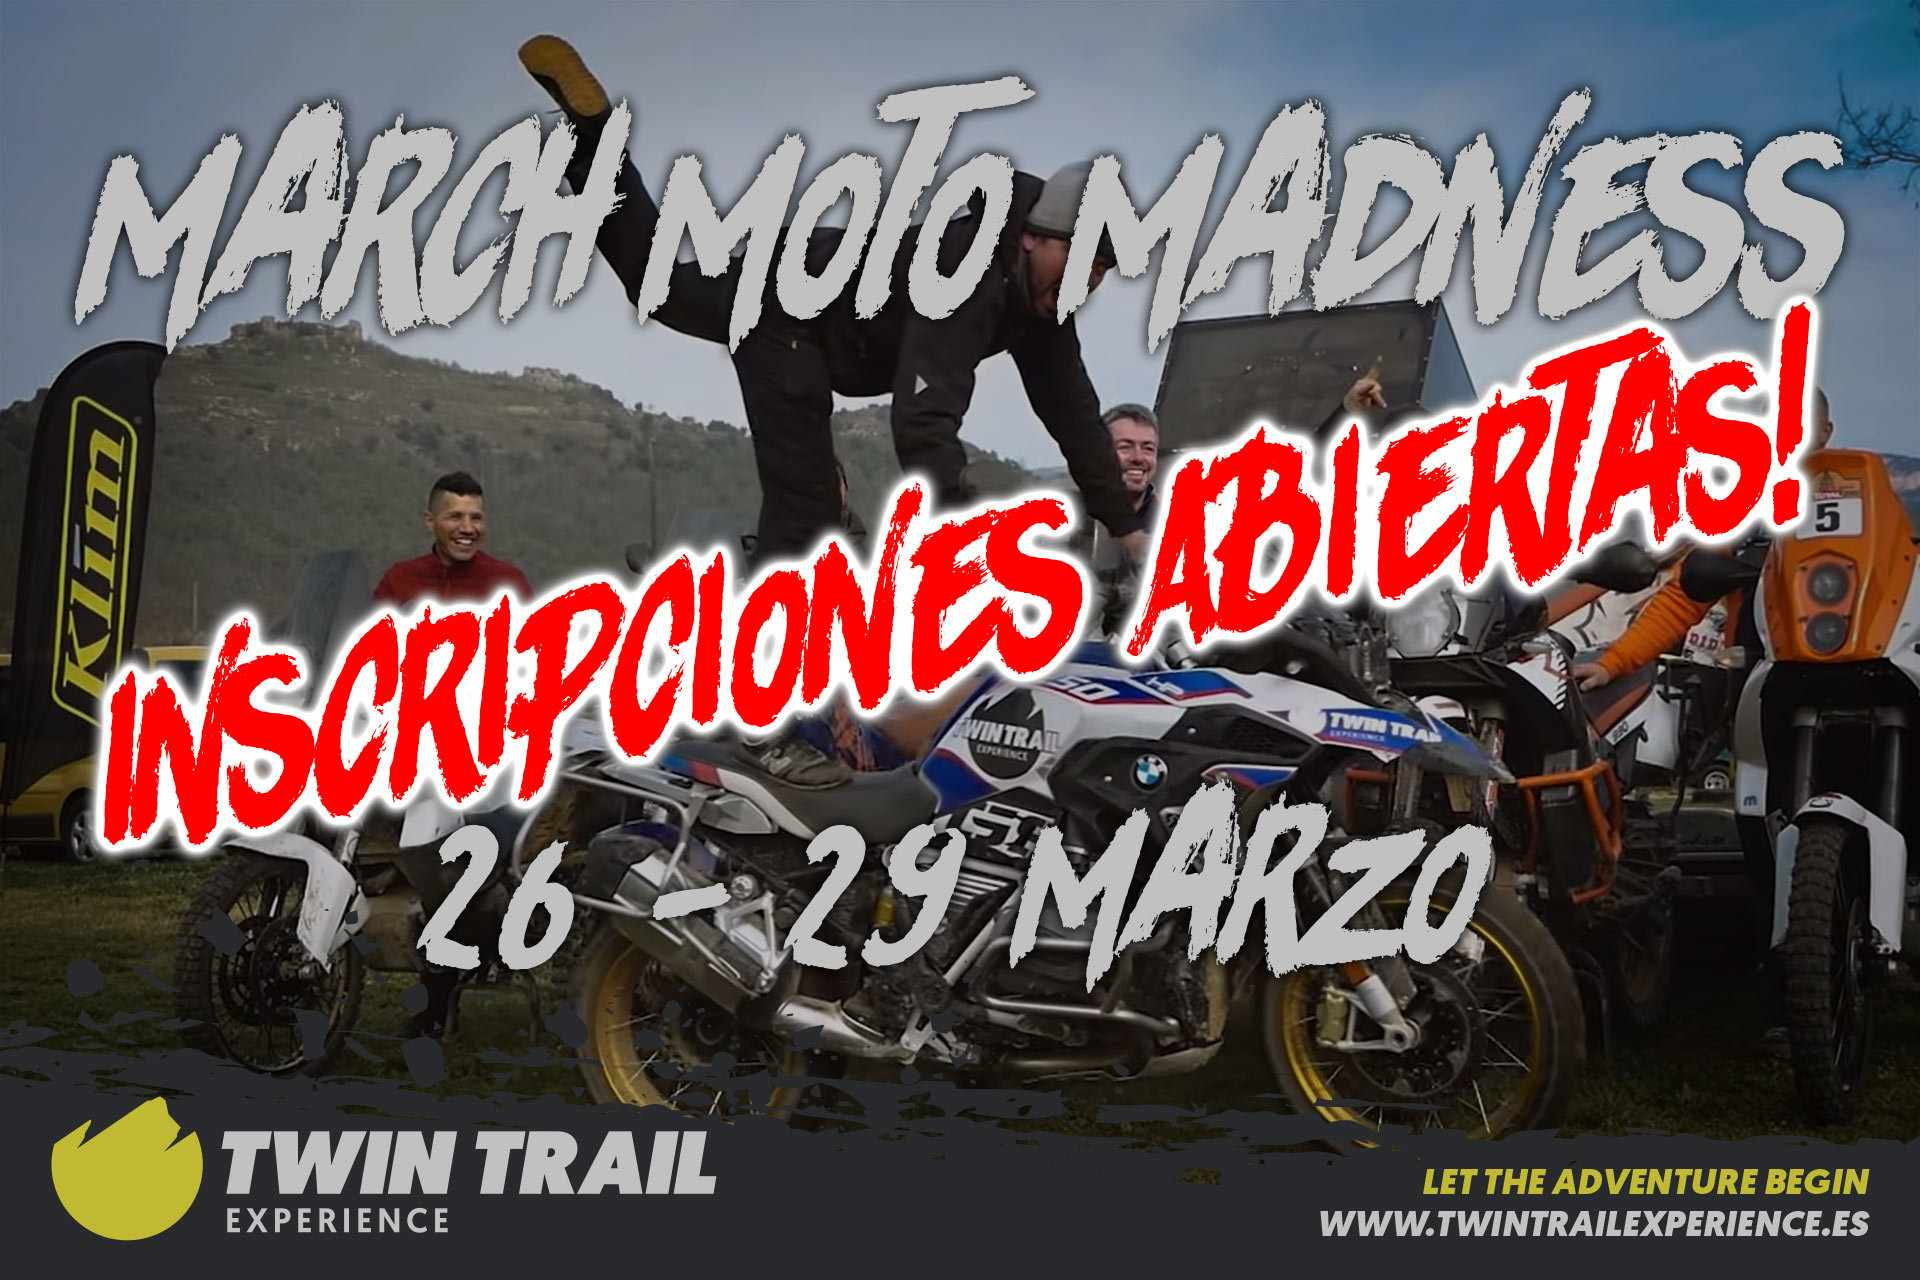 Inscripciones Abiertas March Moto Madness 2020